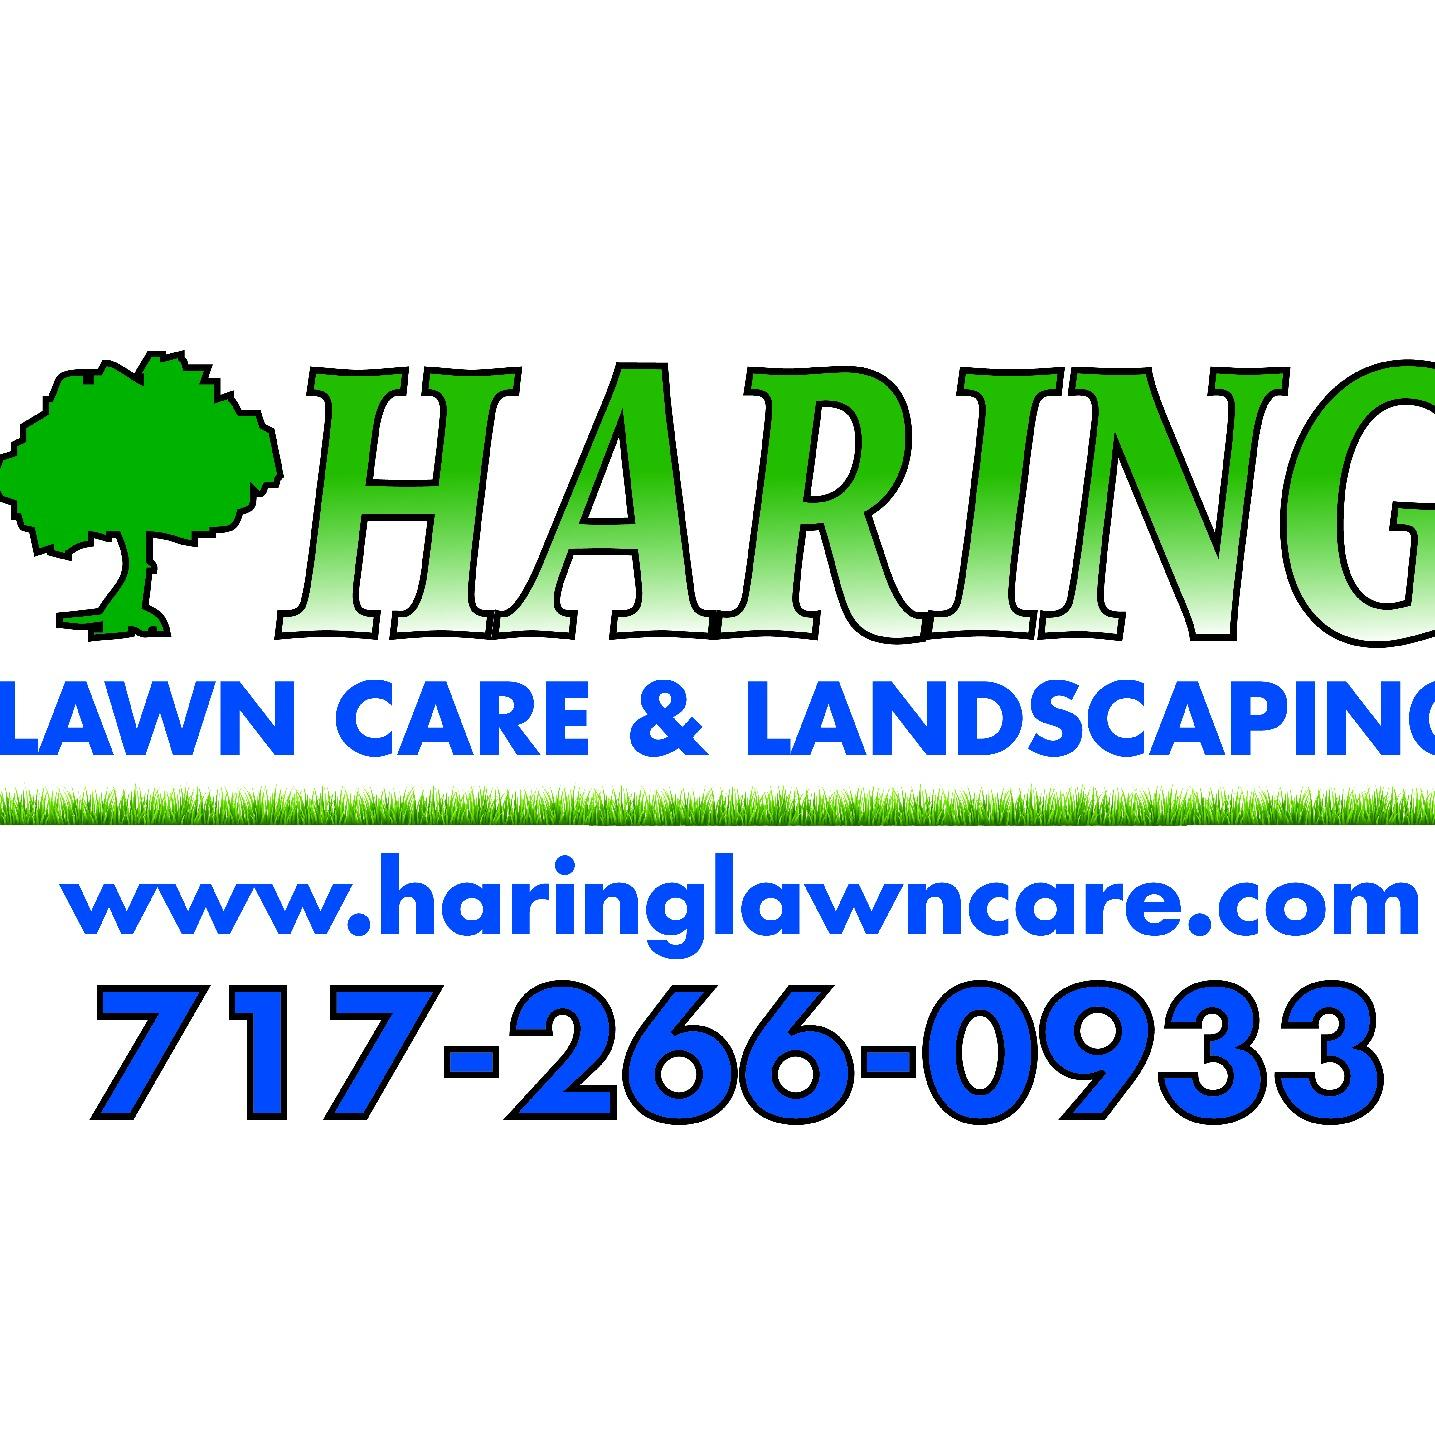 Haring Lawn Care & Landscaping LLC